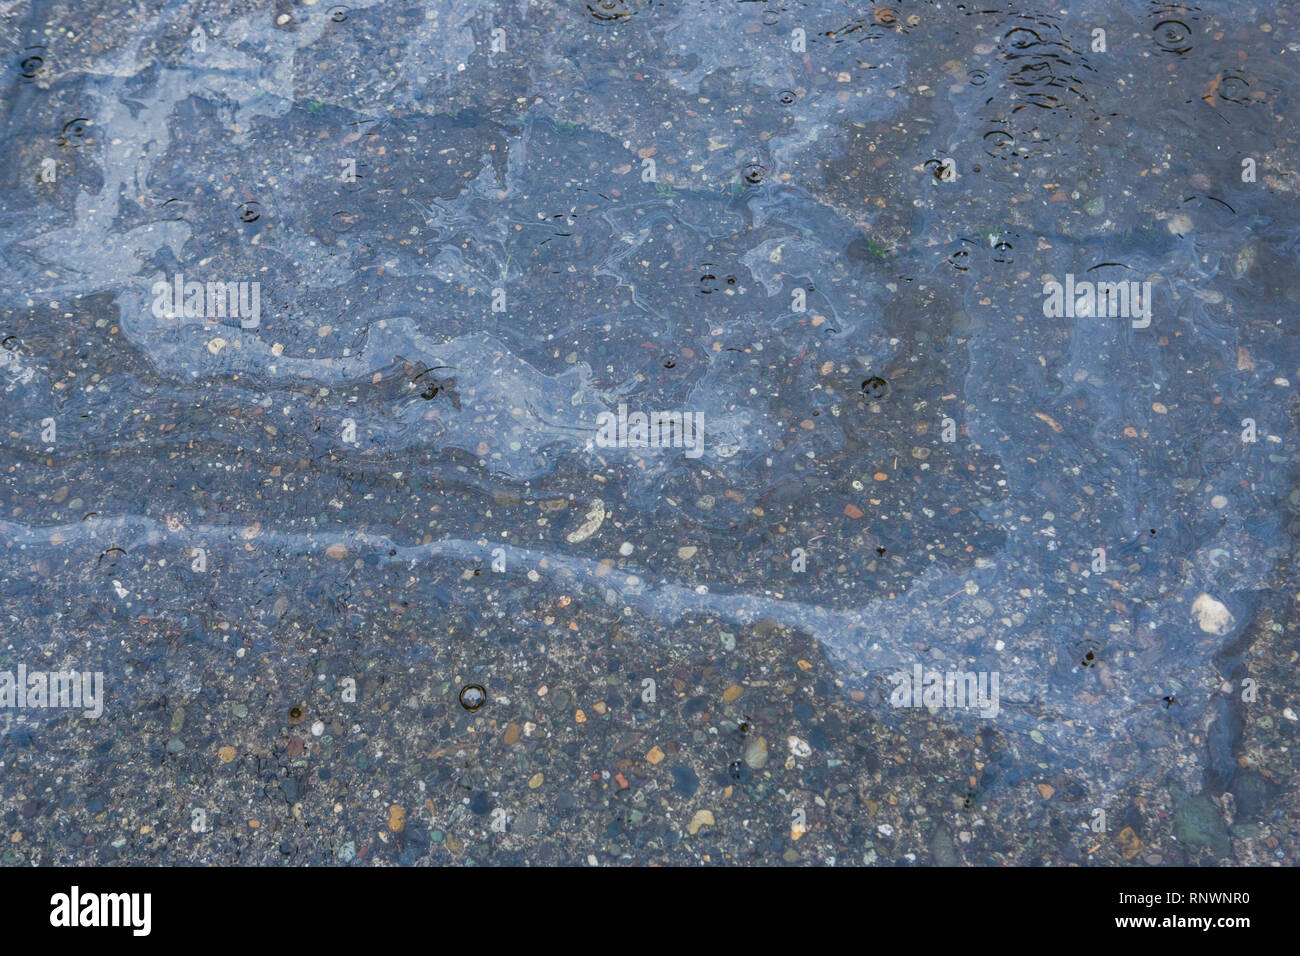 Oil floating on a puddle on a concrete street during a rain storm. - Stock Image